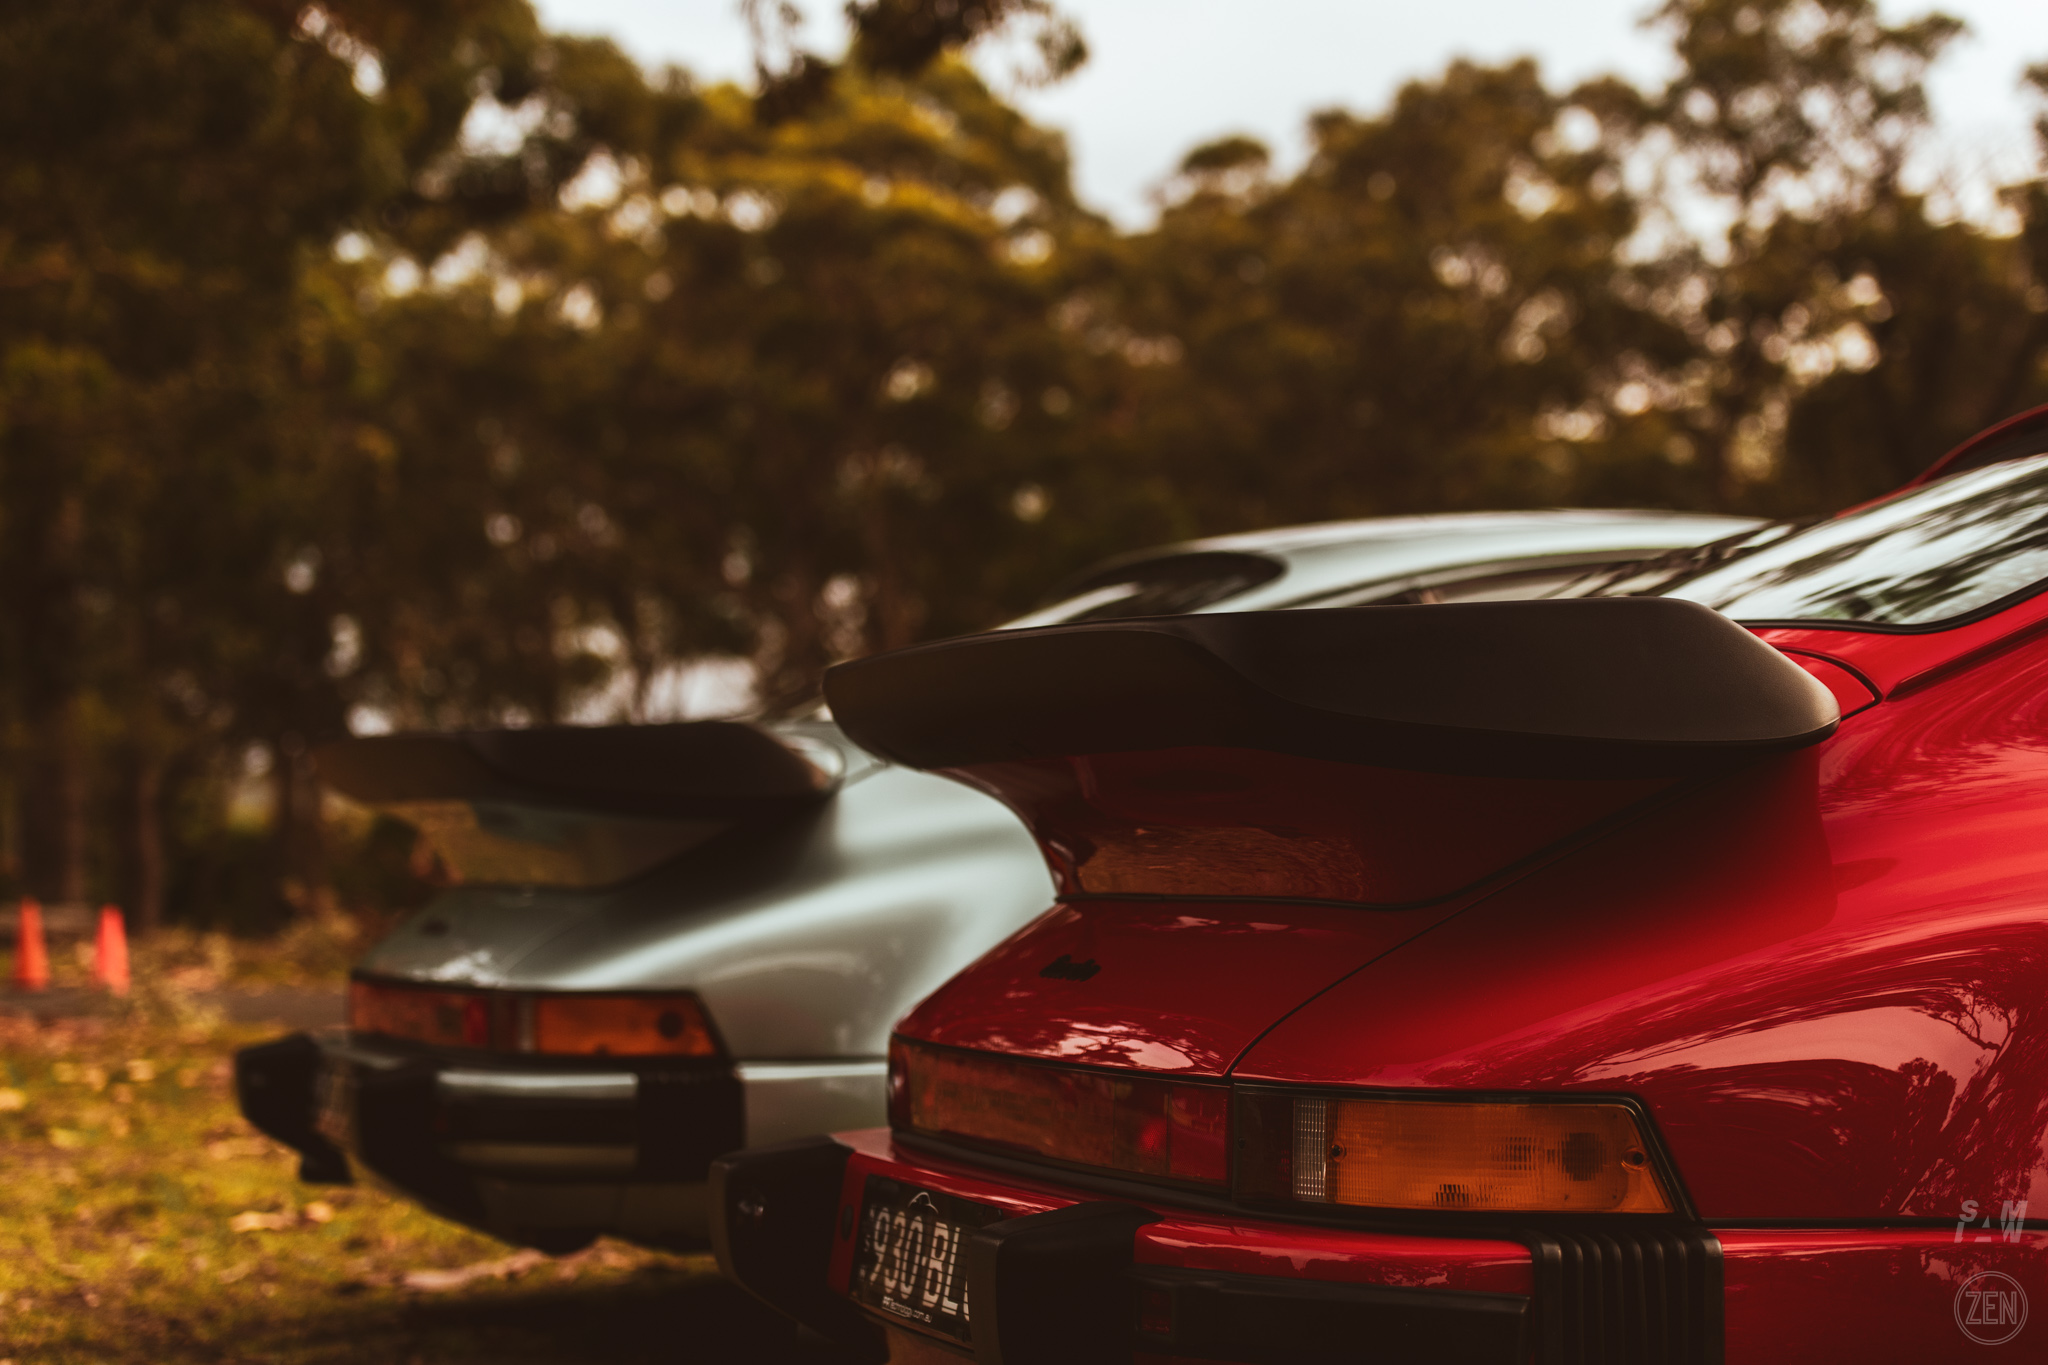 2019-12-08 - Porsches & Coffee 005